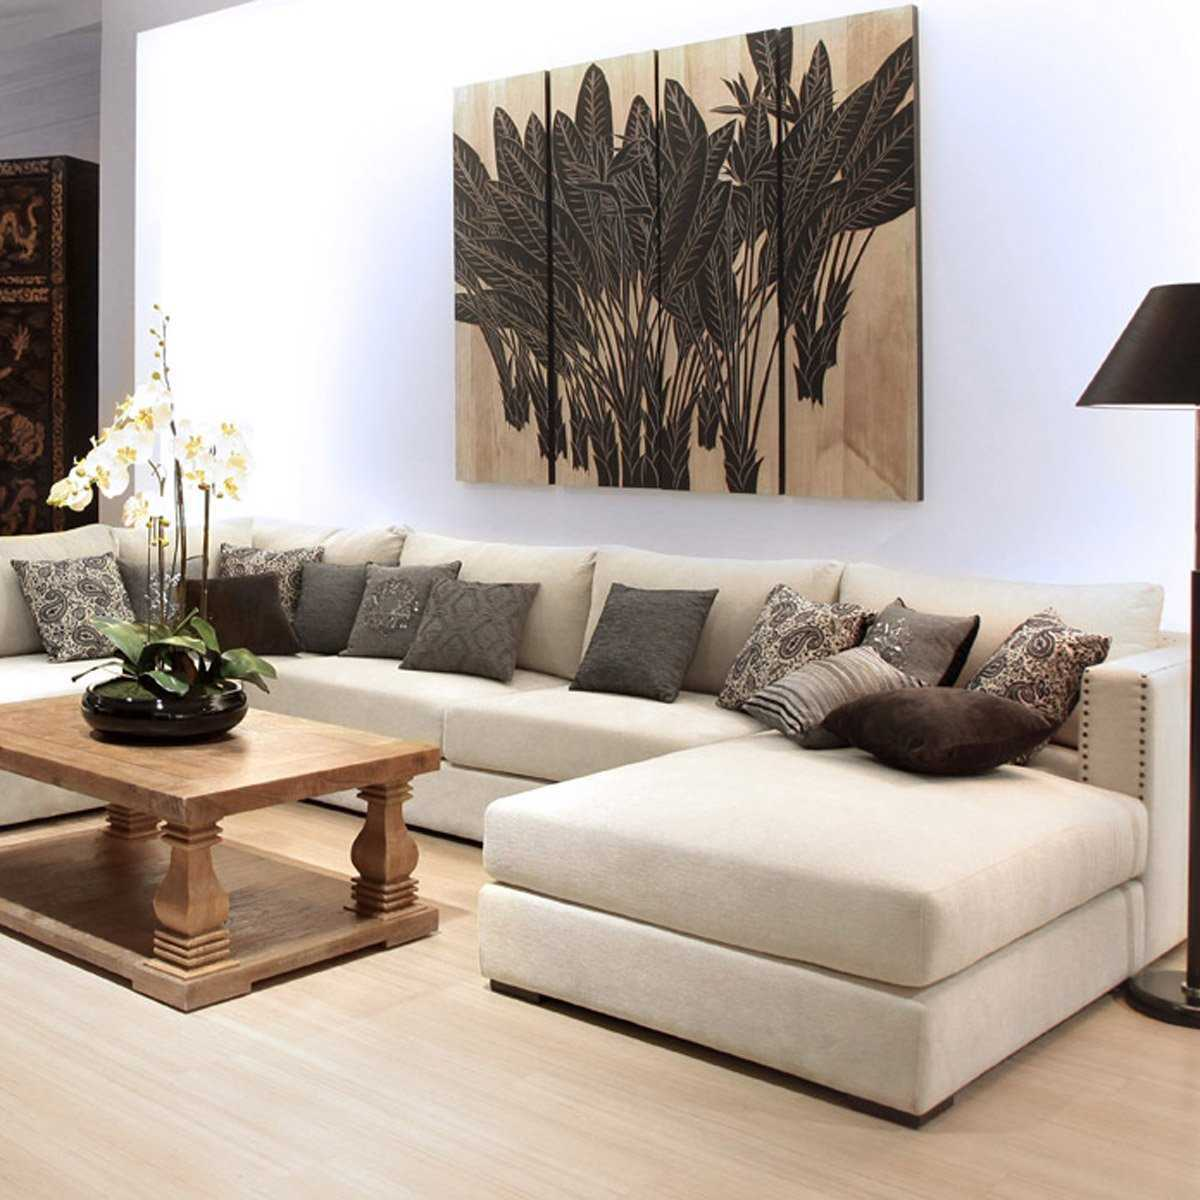 Living room sofas sectional sofas our collections livvi casa panama u shape